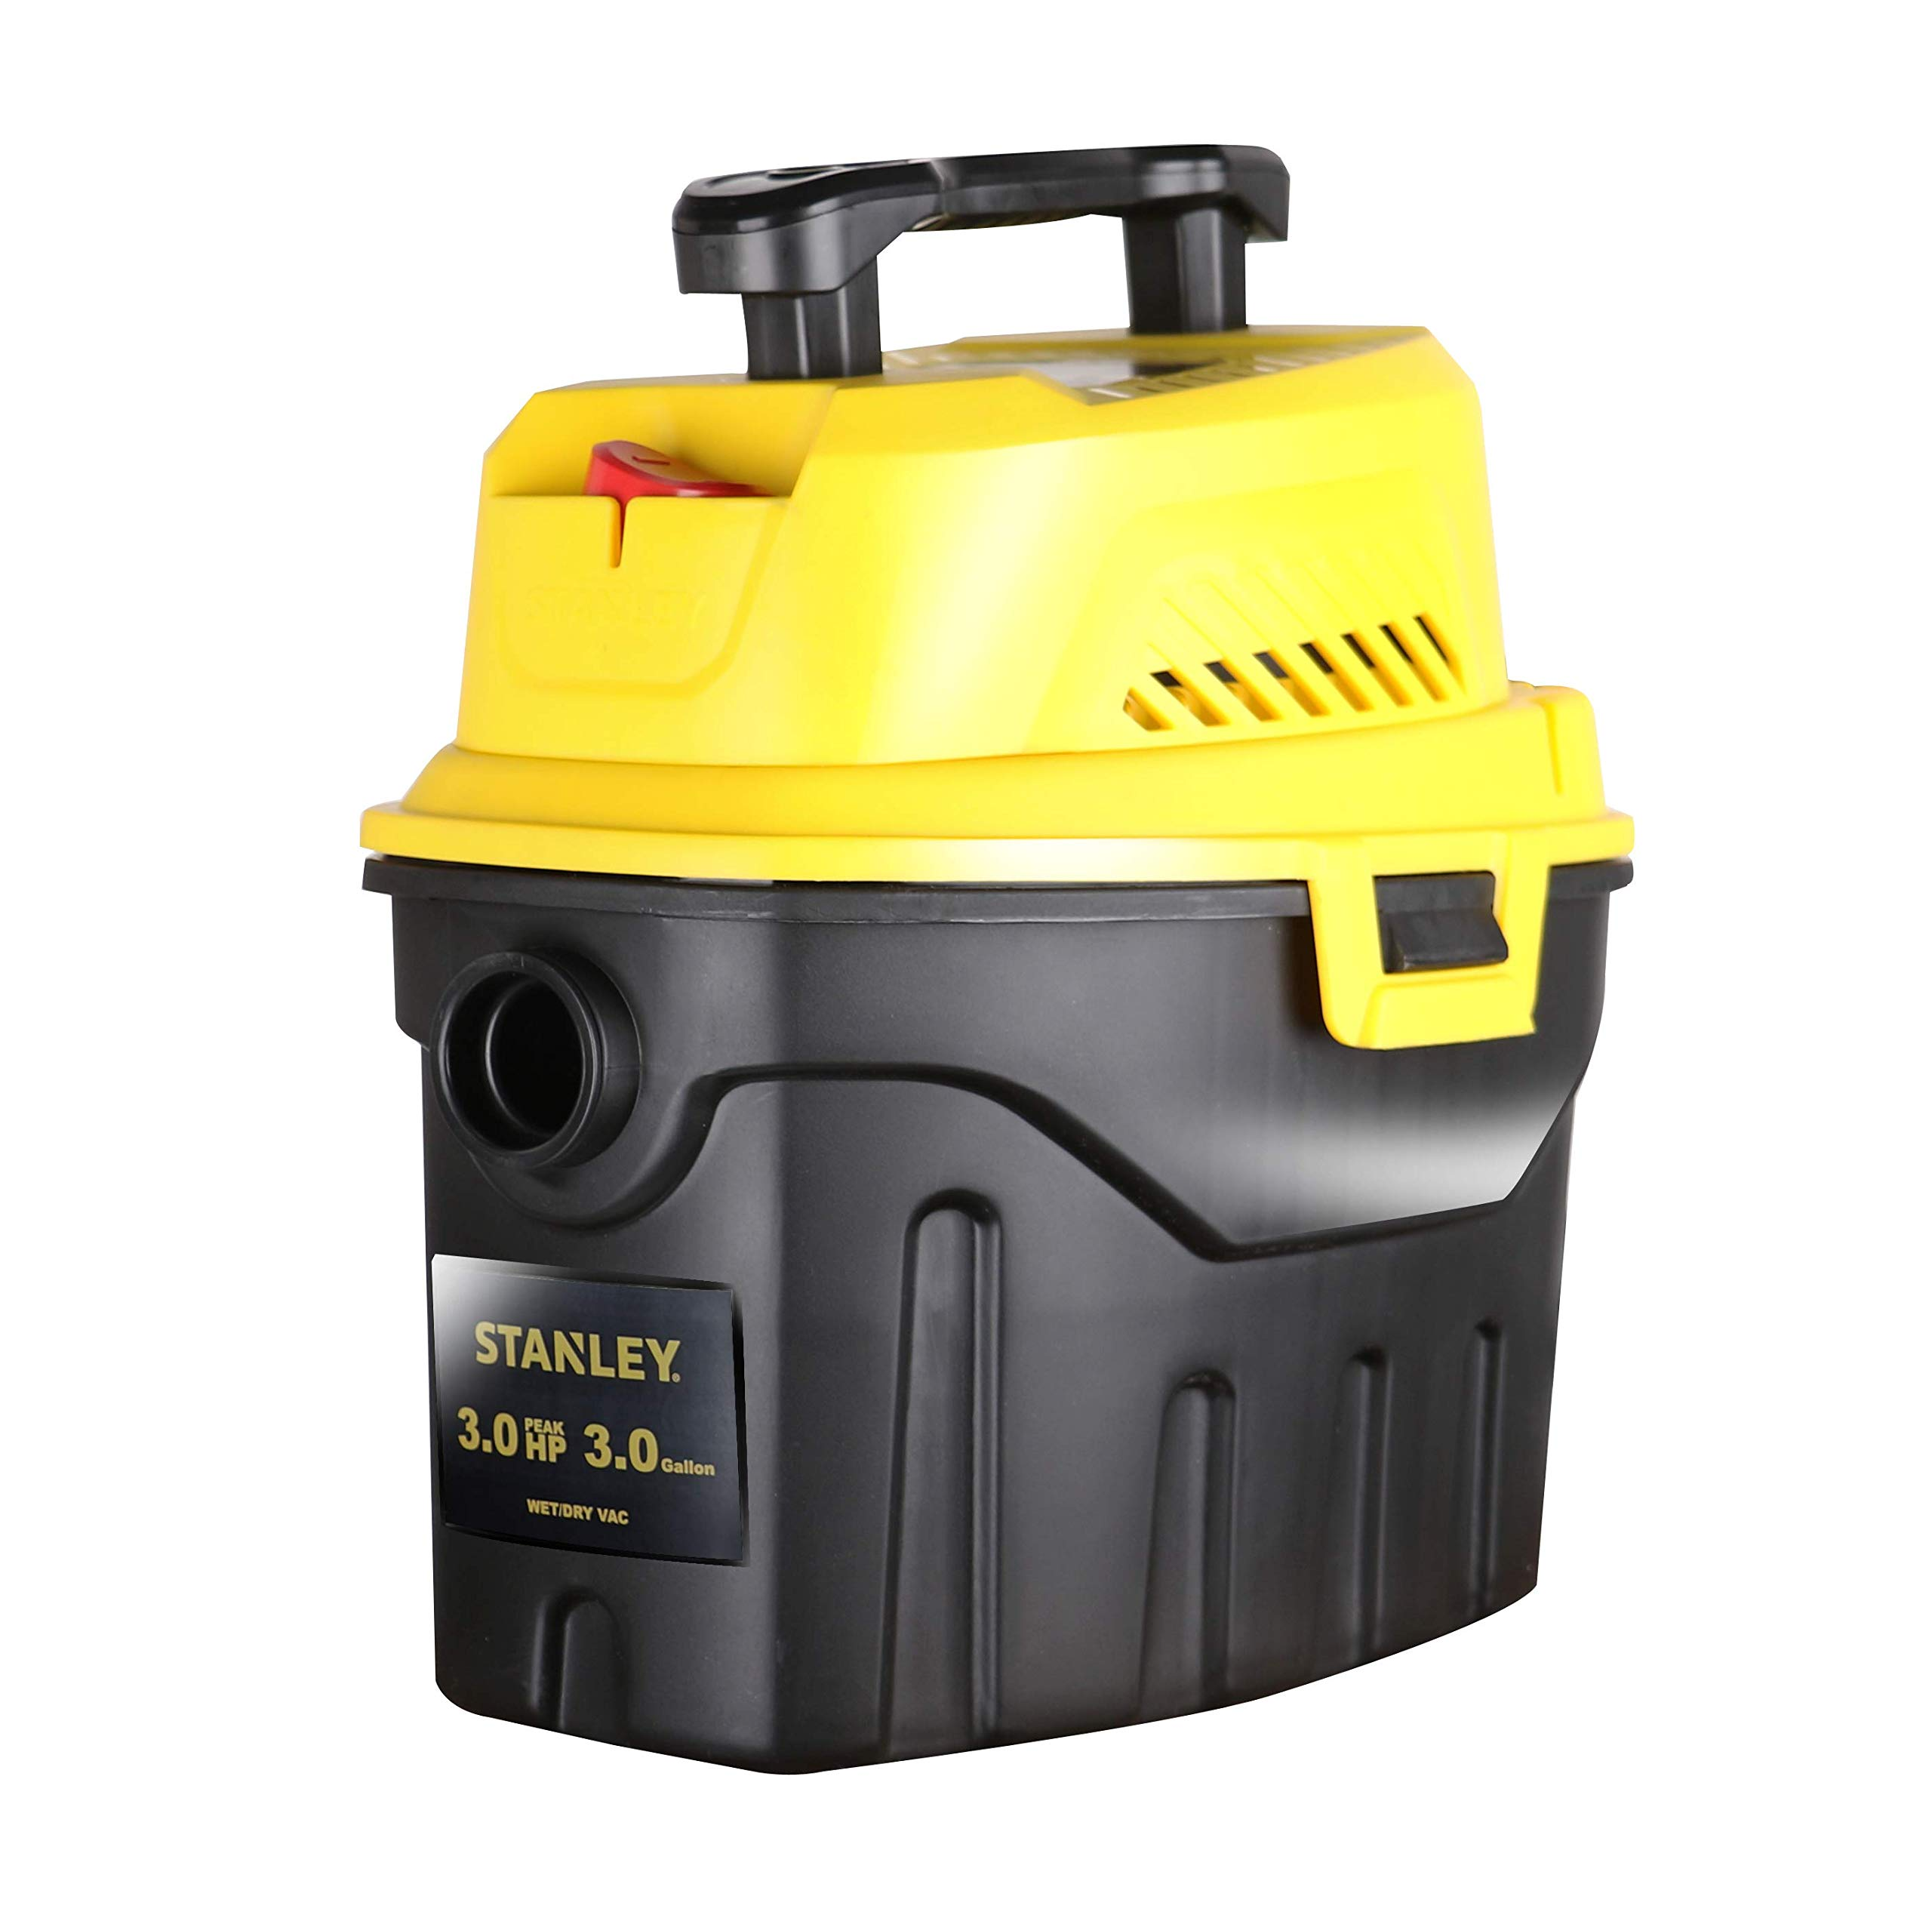 Stanley SL18910P-3 Wet/Dry, 3 Gallon, 3 Horsepower, Portable Car Vacuum, 3.0 HP AC, Black by Stanley